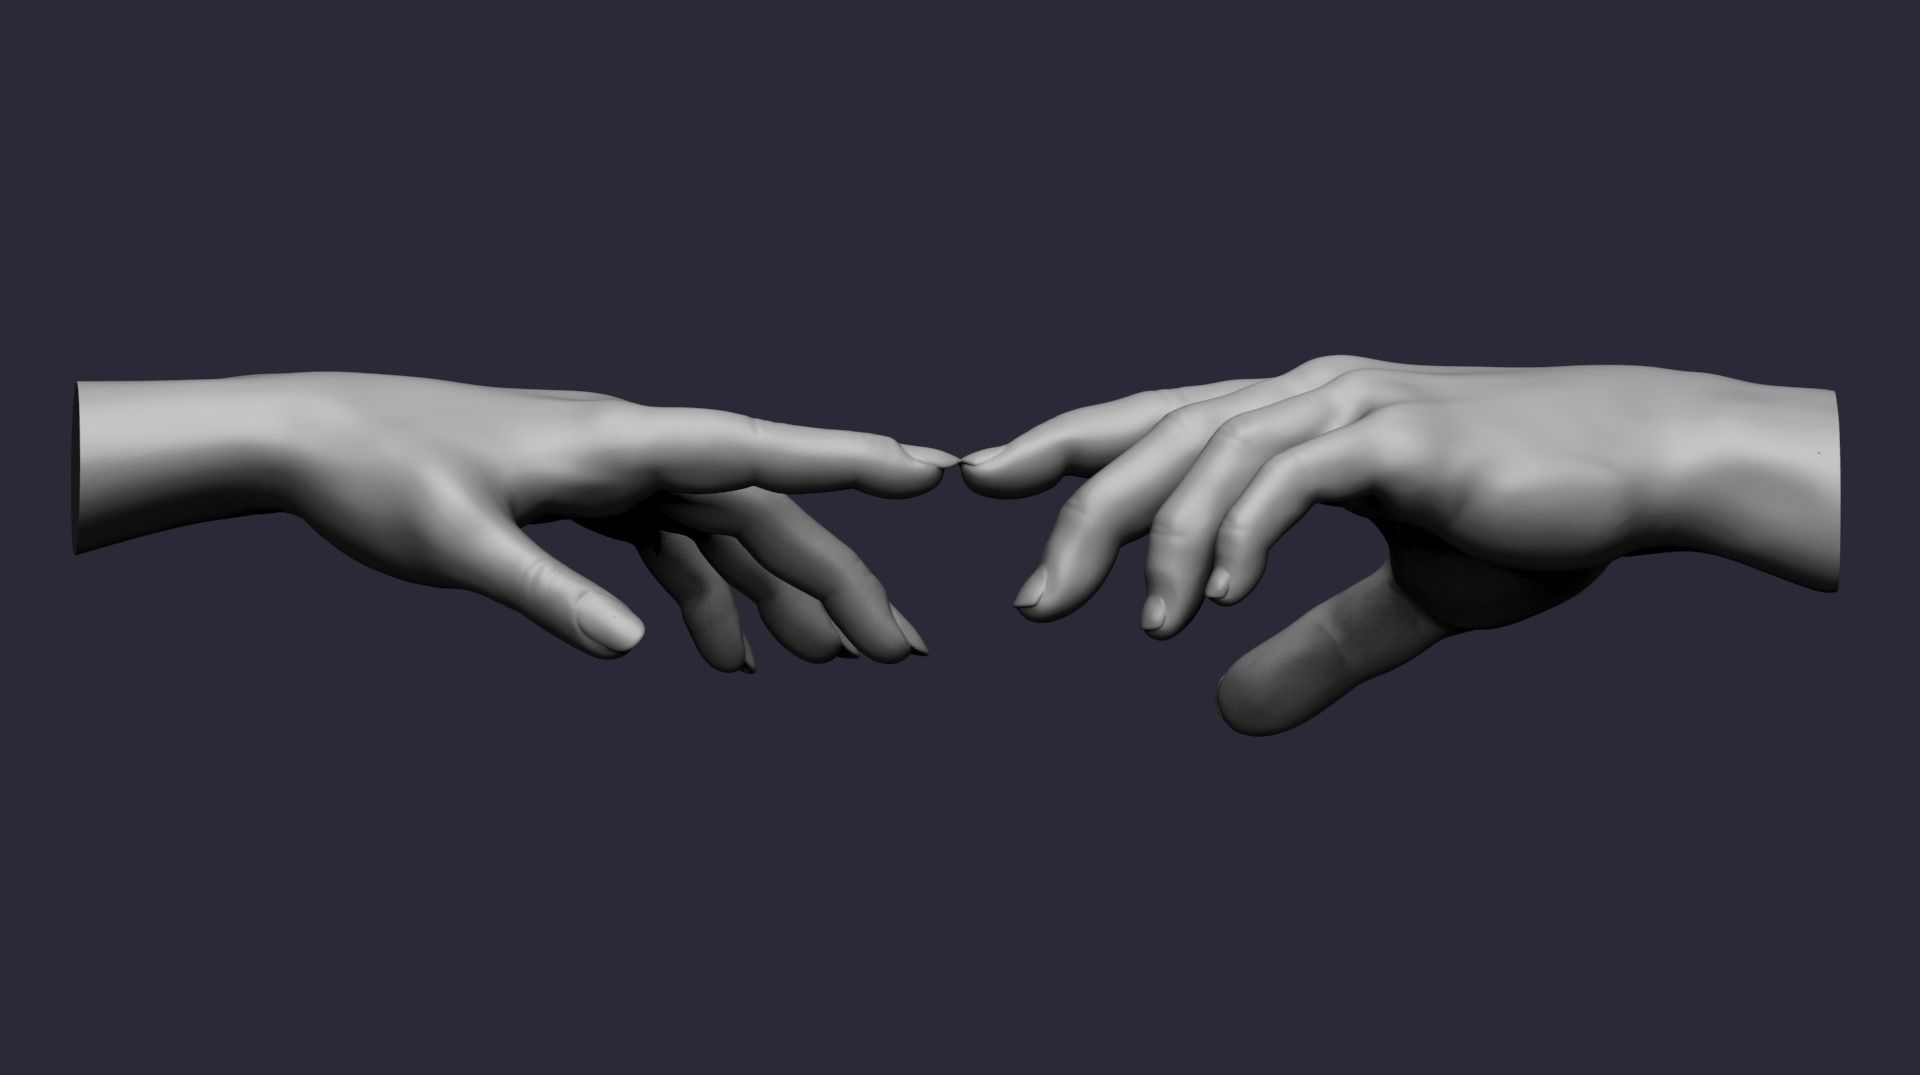 Male and female hand pose